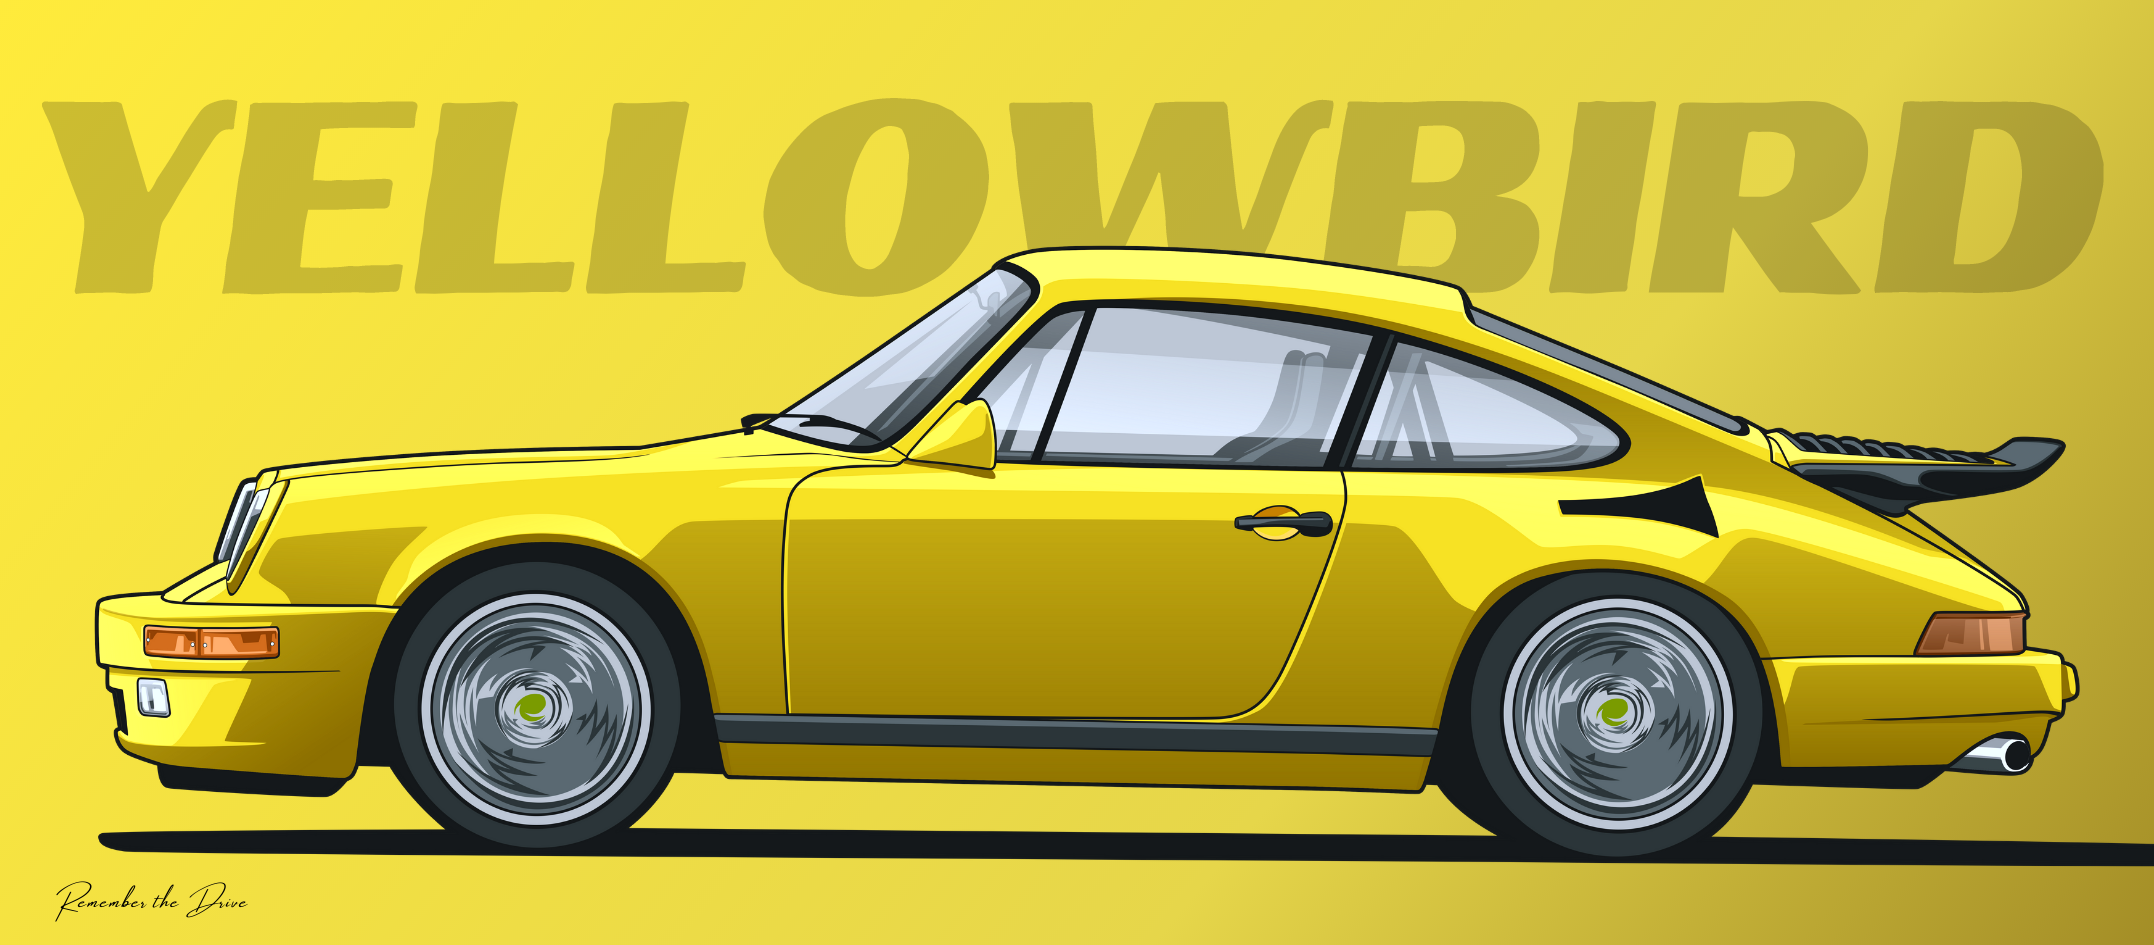 Can I have feedback on this Ruf Yellowbird poster I'm working on? What would you change?